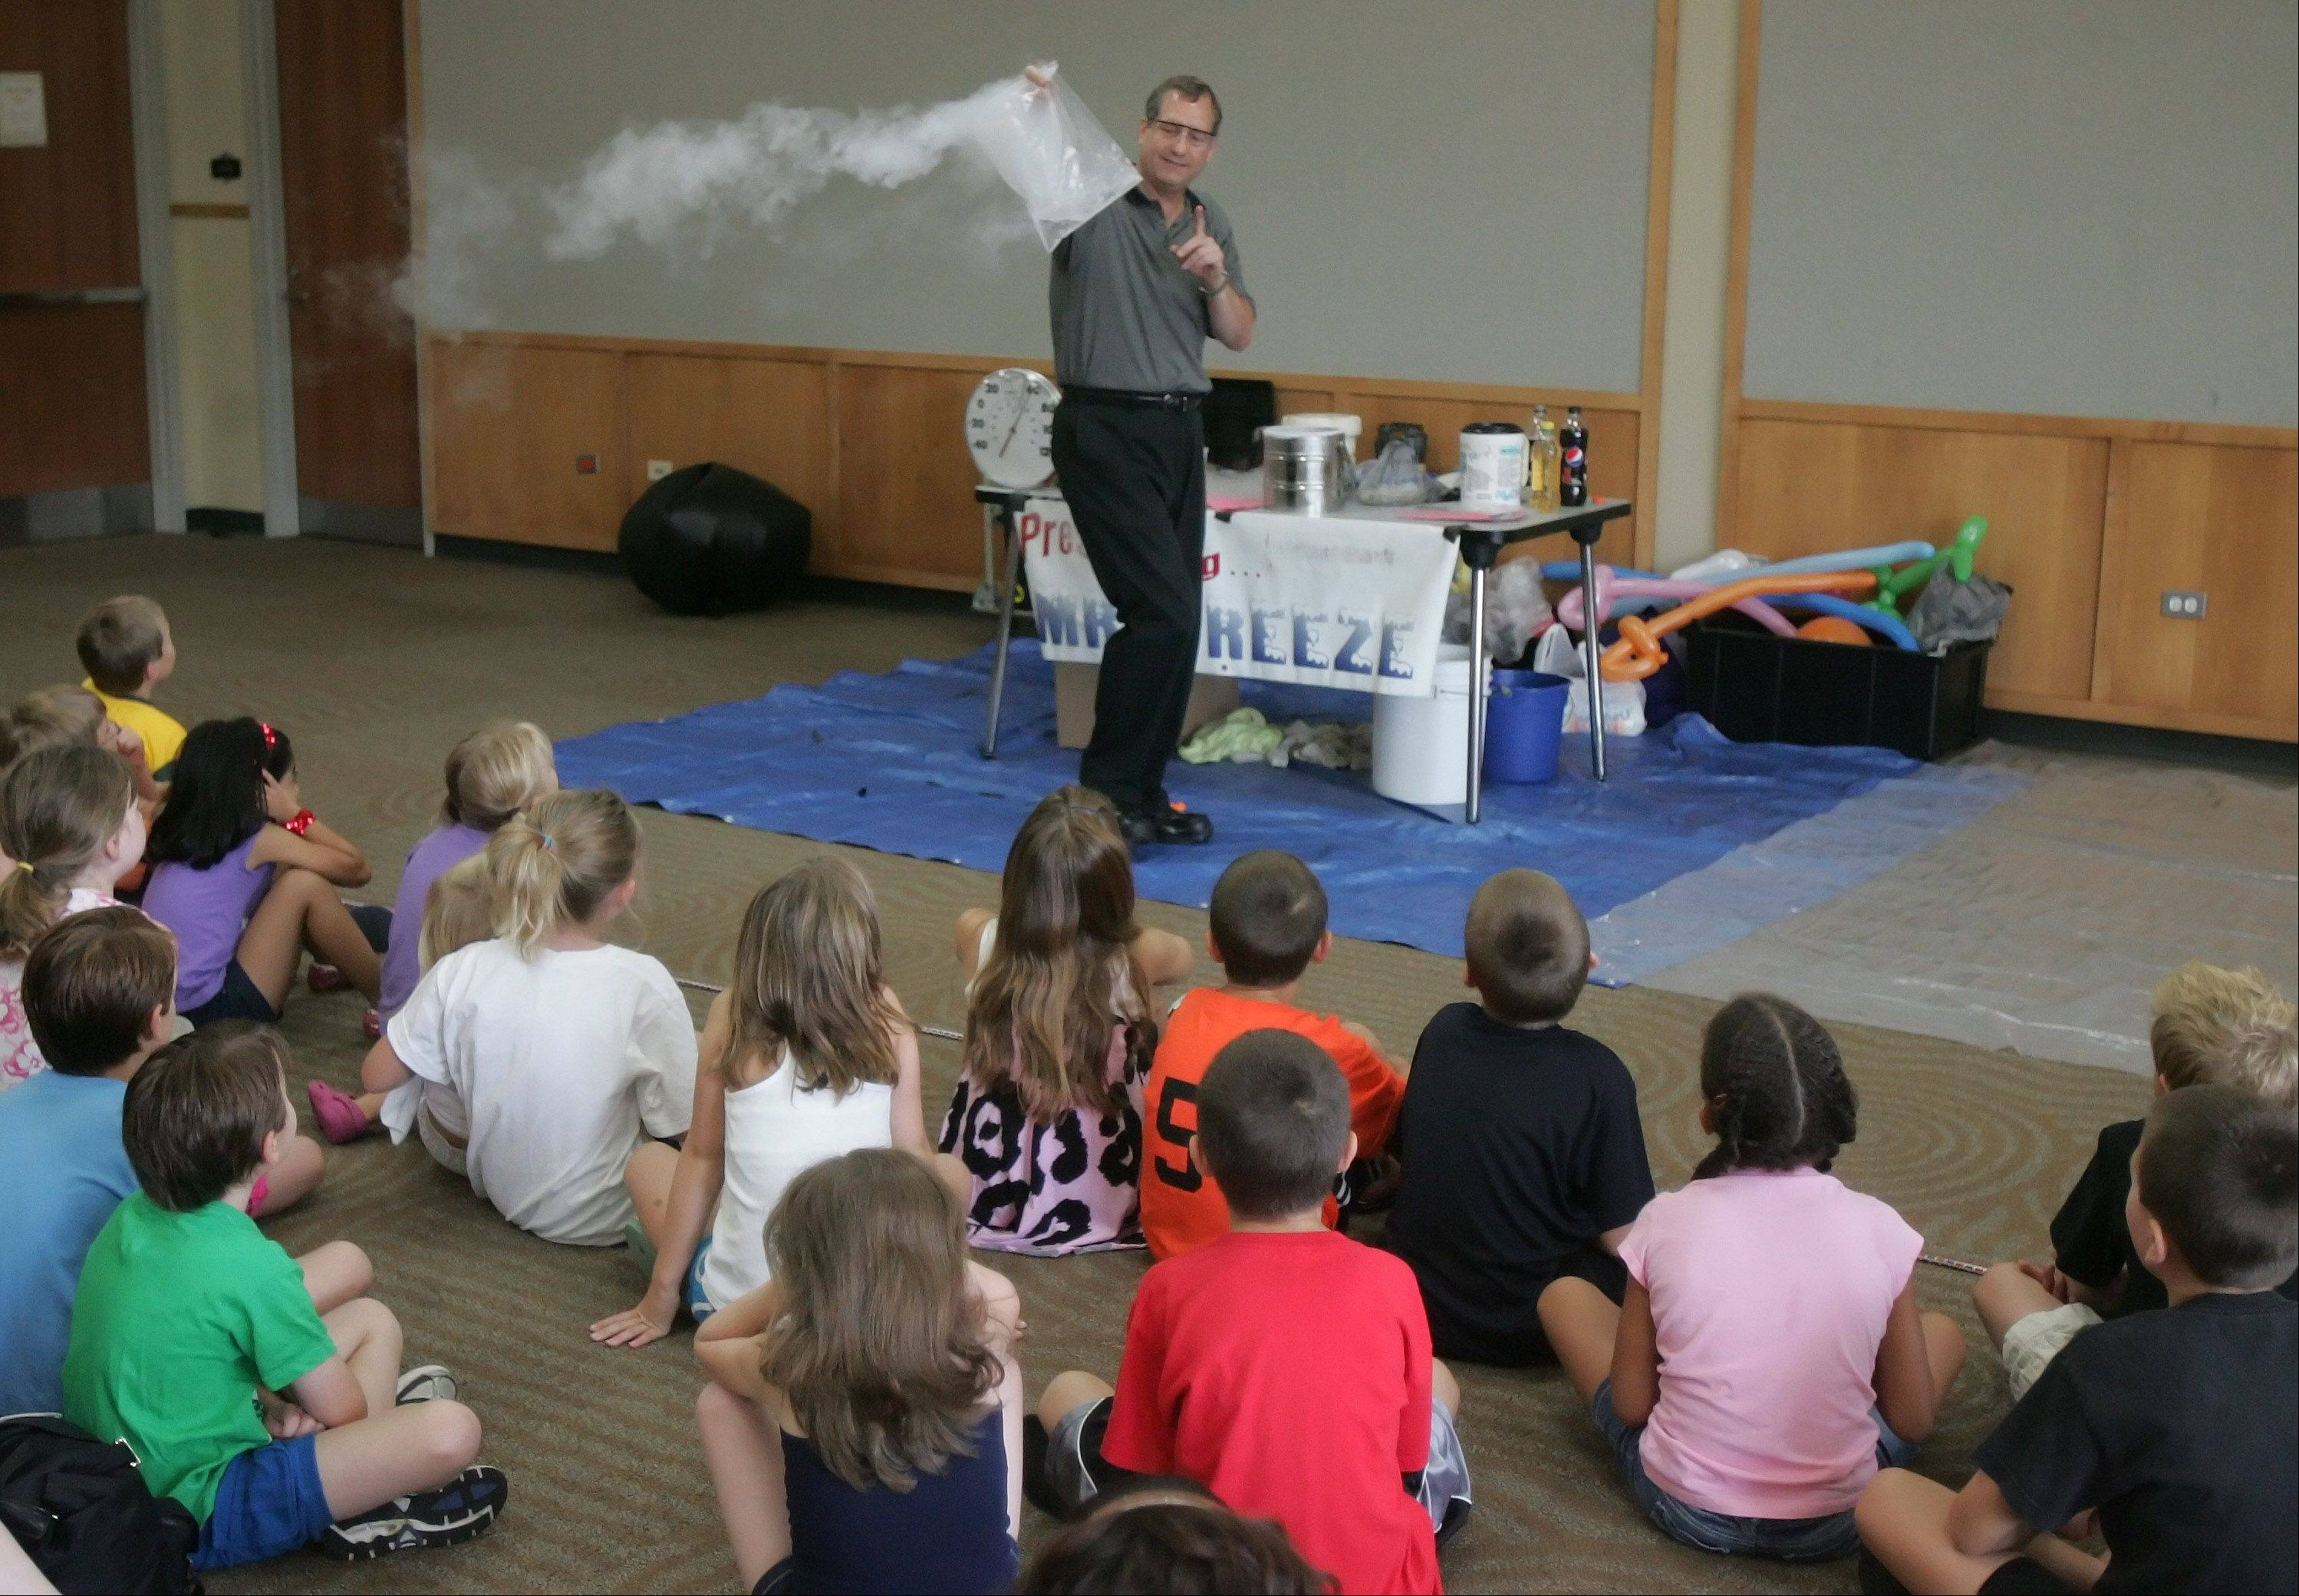 Jerry Zimmerman, also known as Mr. Freeze of Fermilab, demonstrates fun properties of cryogenics for children at Ela Area Public Library. Zimmerman discussed the properties of liquid nitrogen and its affects on air, liquids and solids.